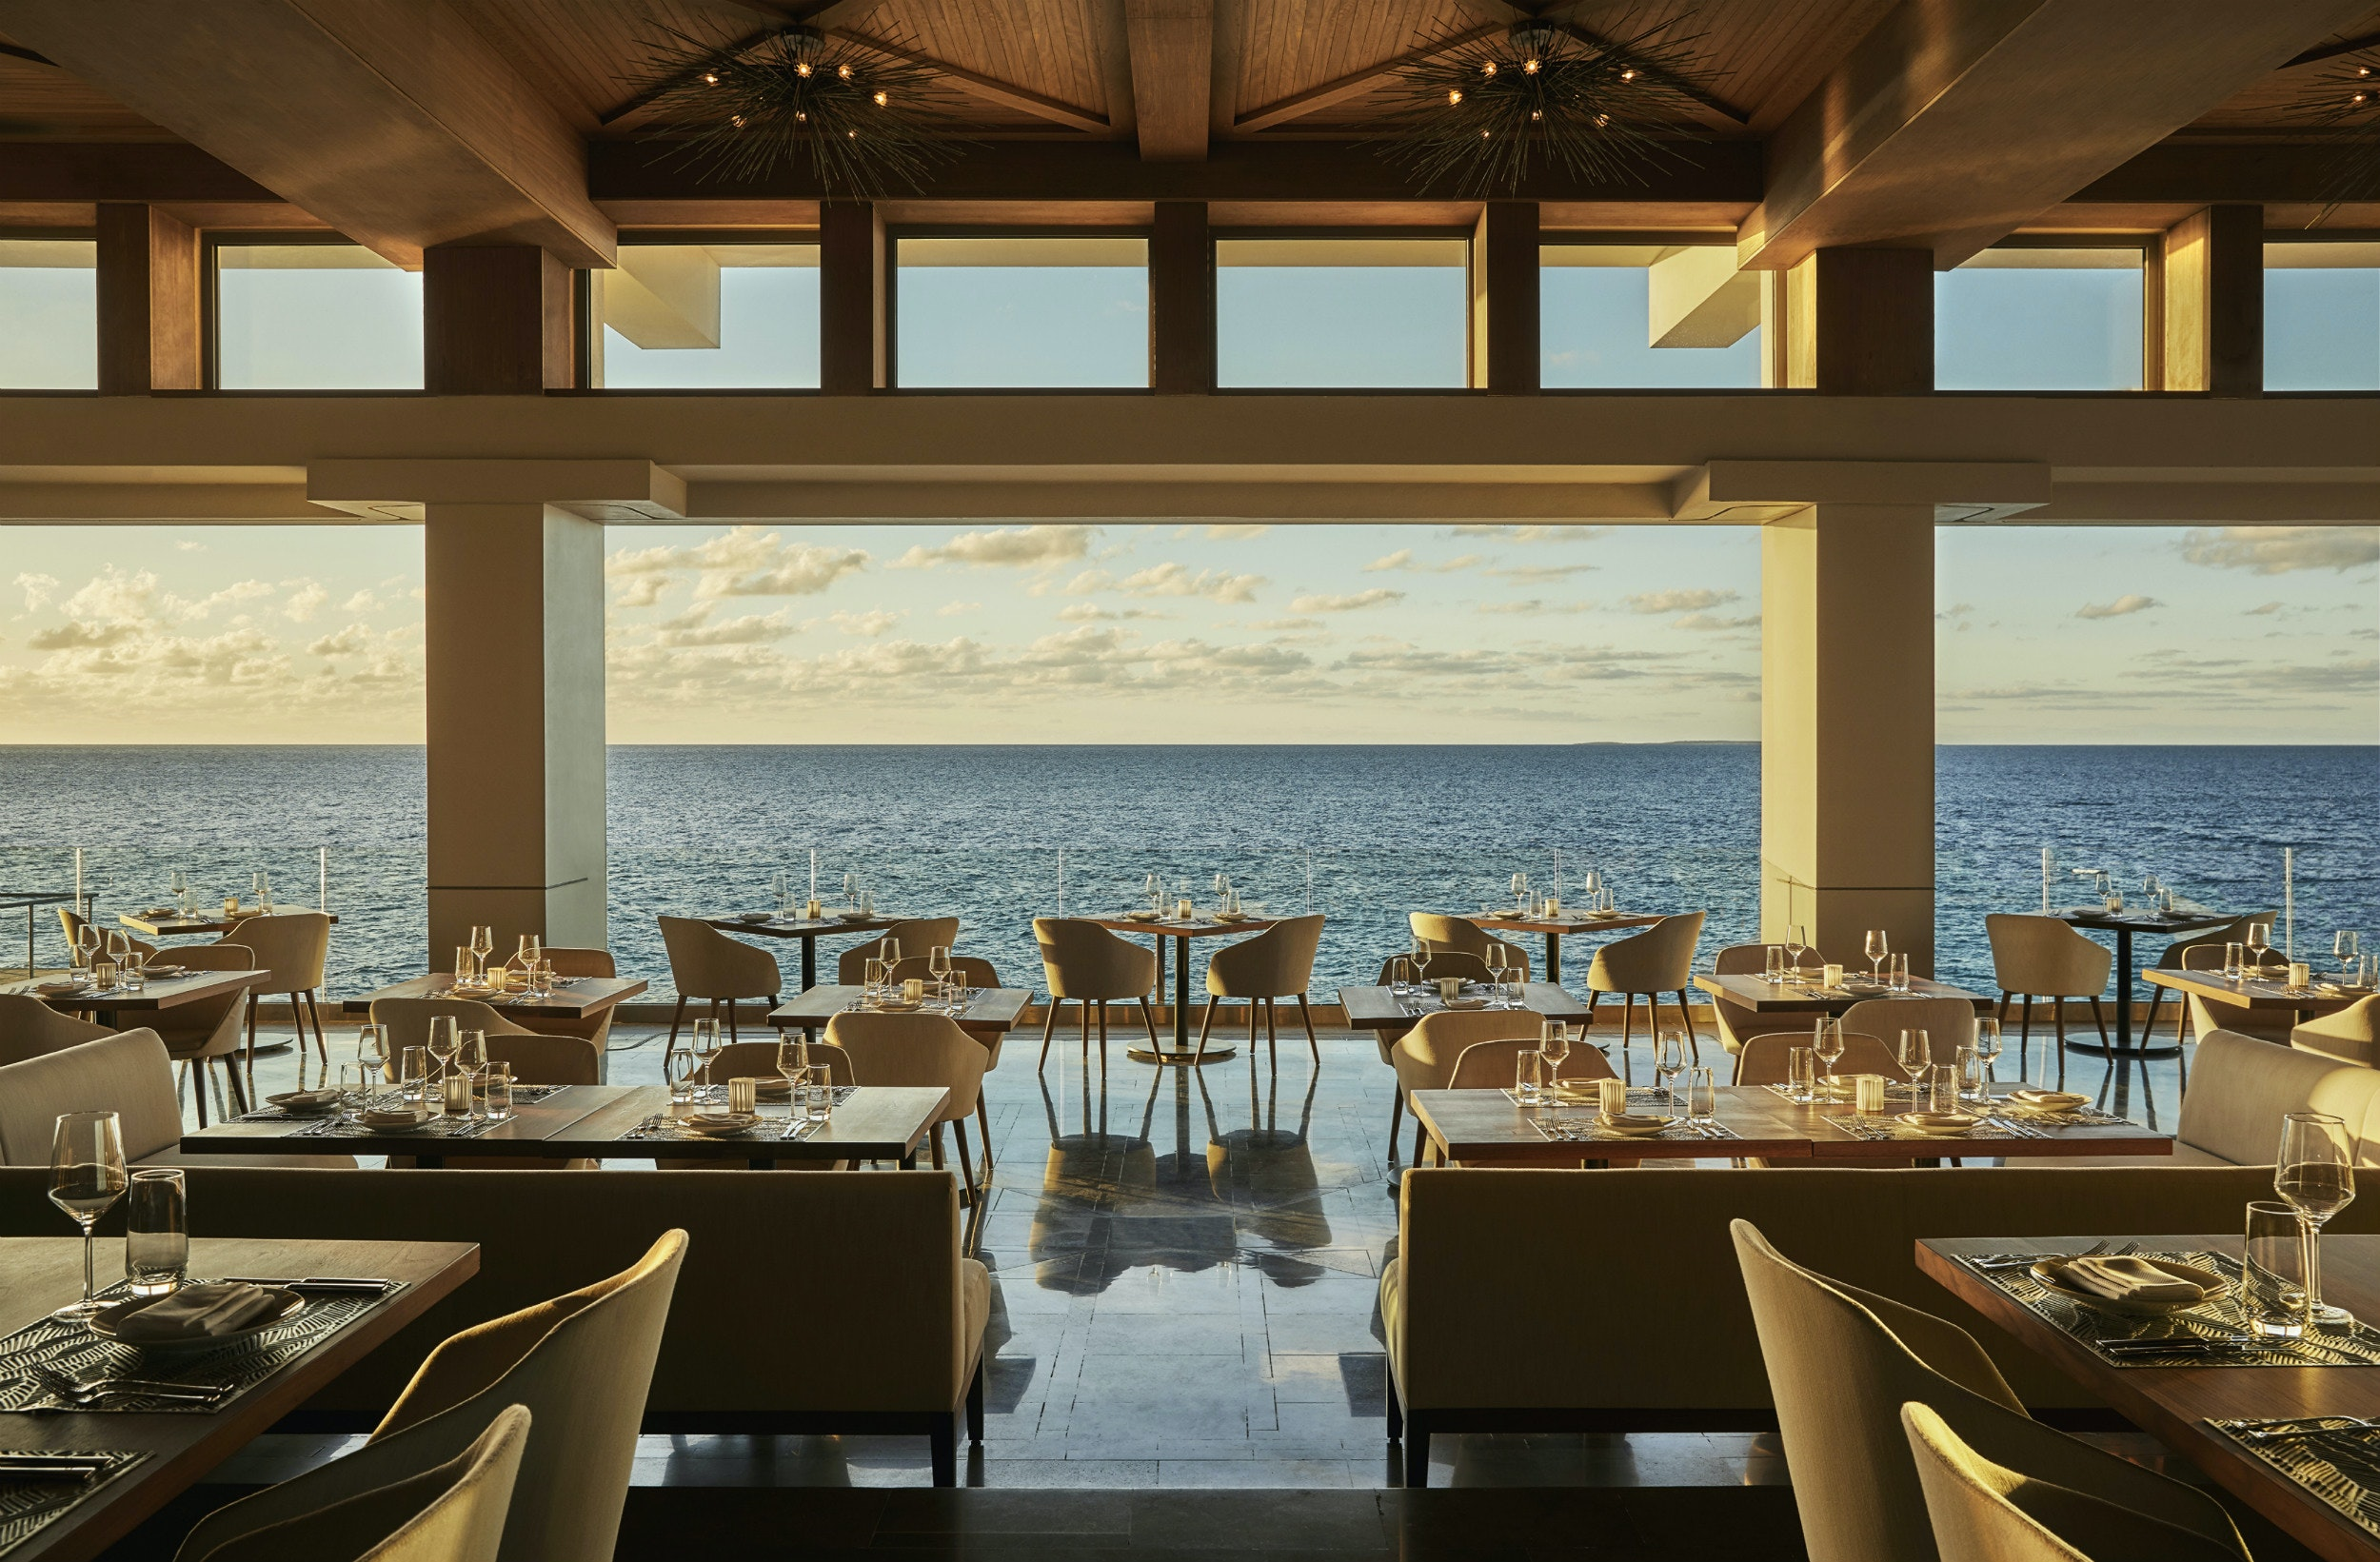 Original four seasons anguilla coba restaurant.jpg?1539829732?ixlib=rails 0.3